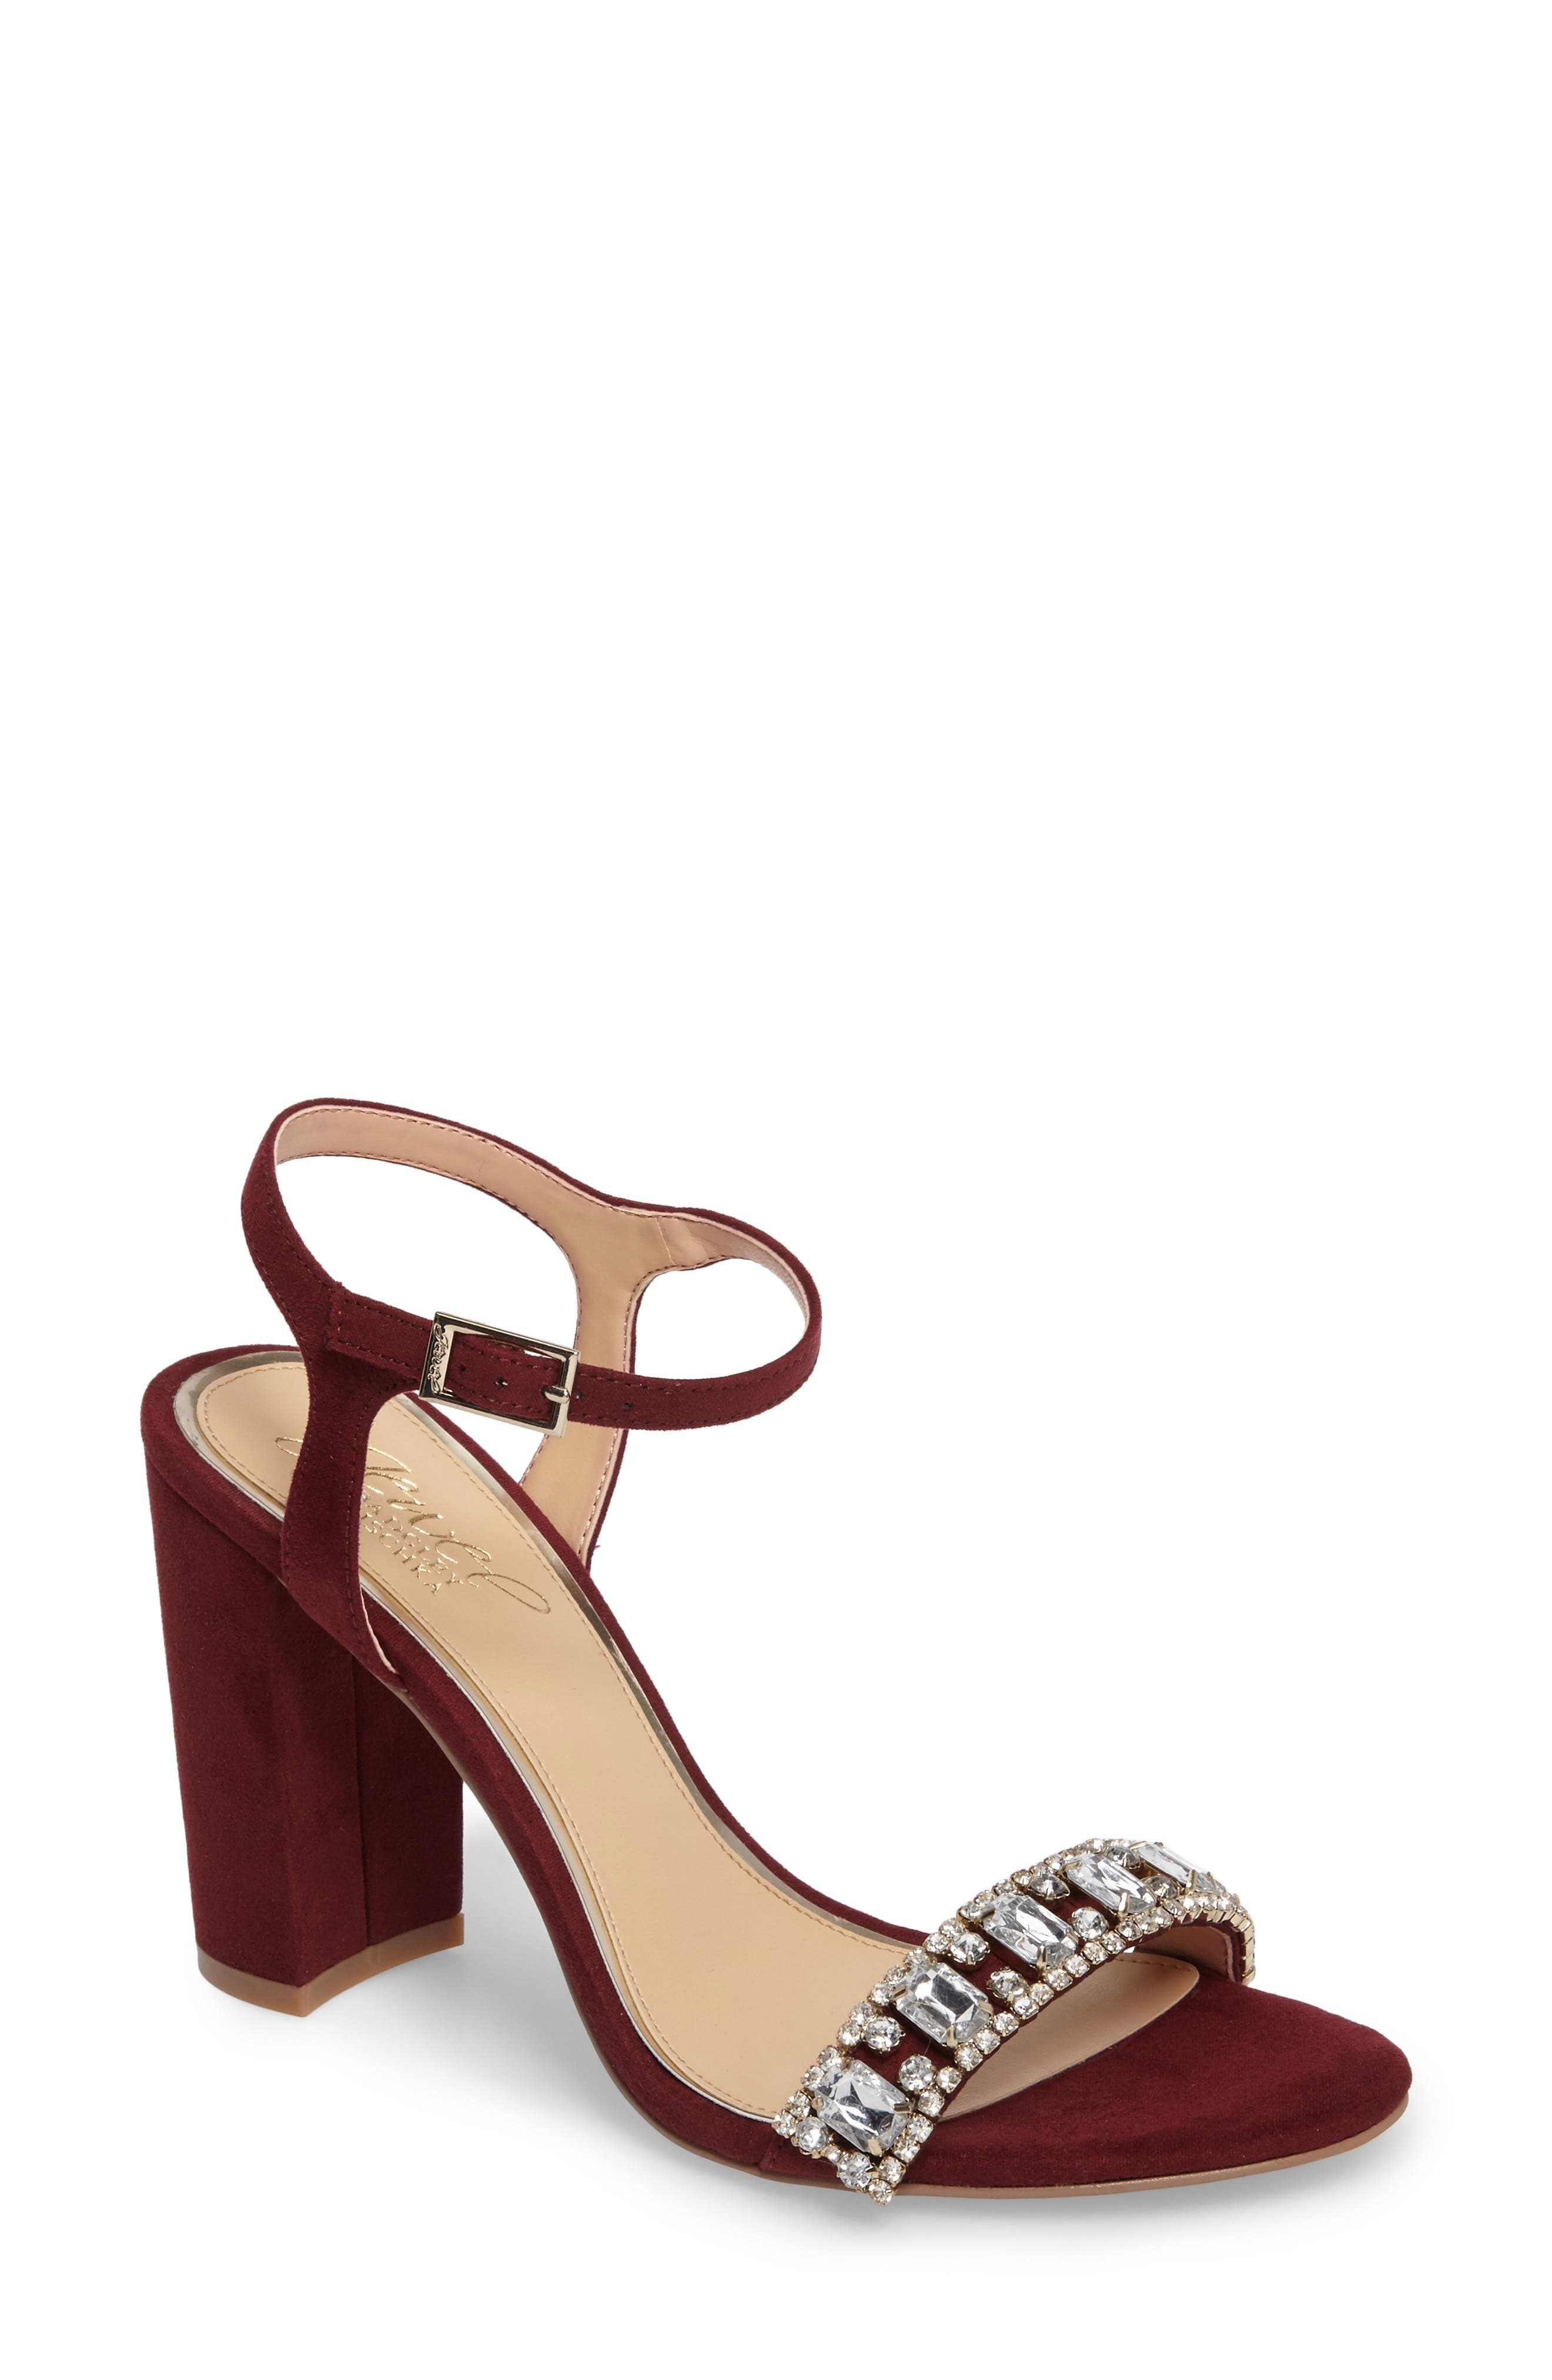 Alternate Image 1 Selected - Jewel Badgley Mischka Hendricks Embellished Block Heel Sandal (Women)